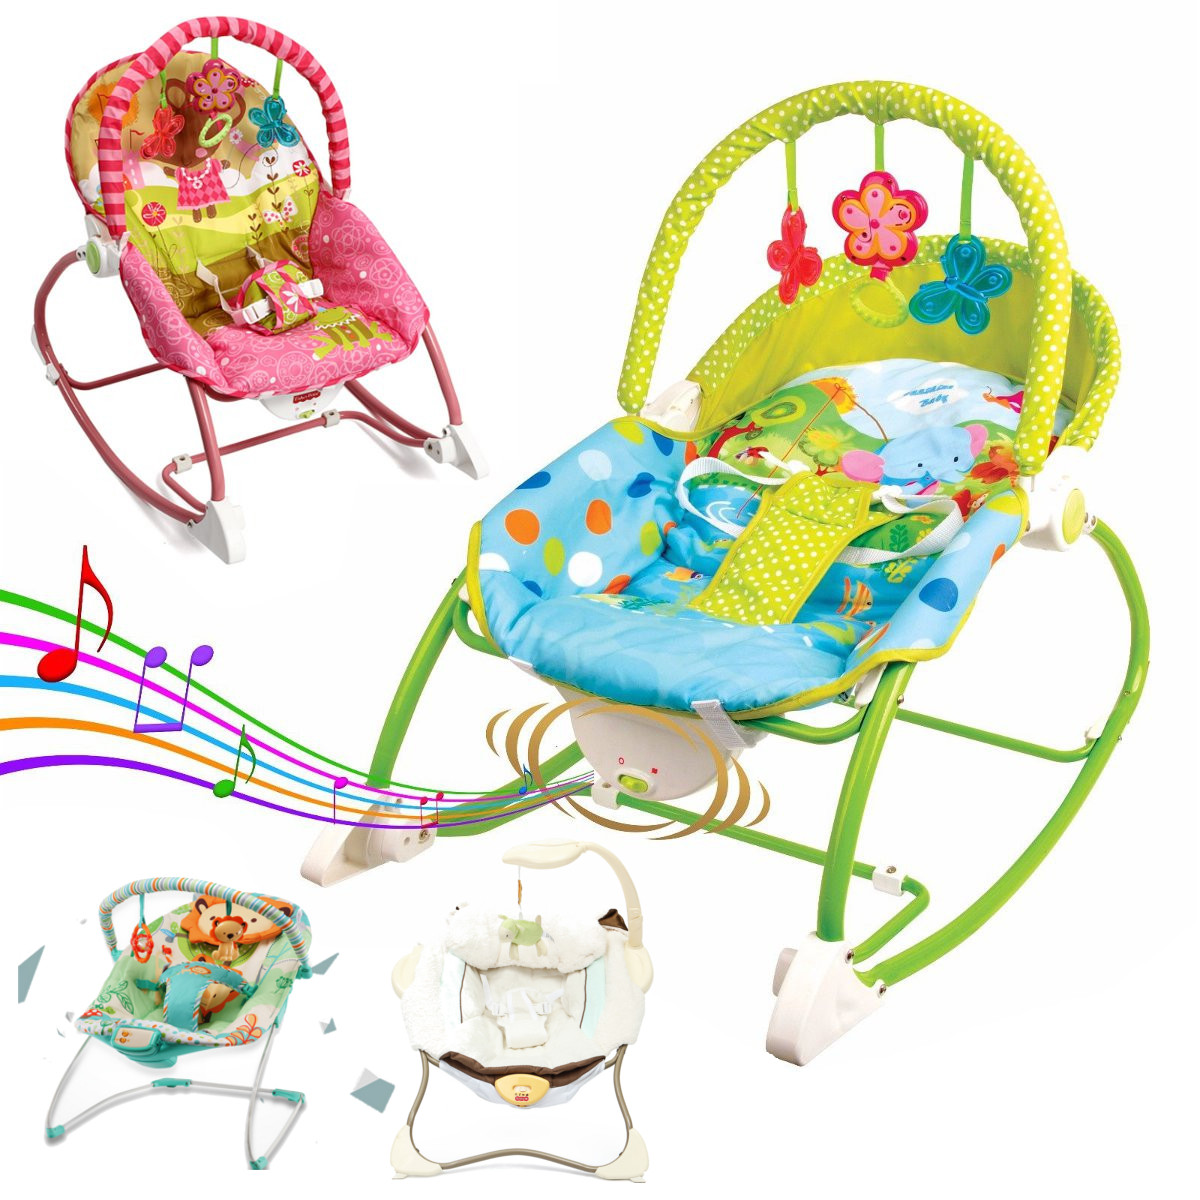 Bouncer Baby Details About Baby Swing Infant Cradle Electric Rocker Bouncer Vibration Chair Toys Music Seat